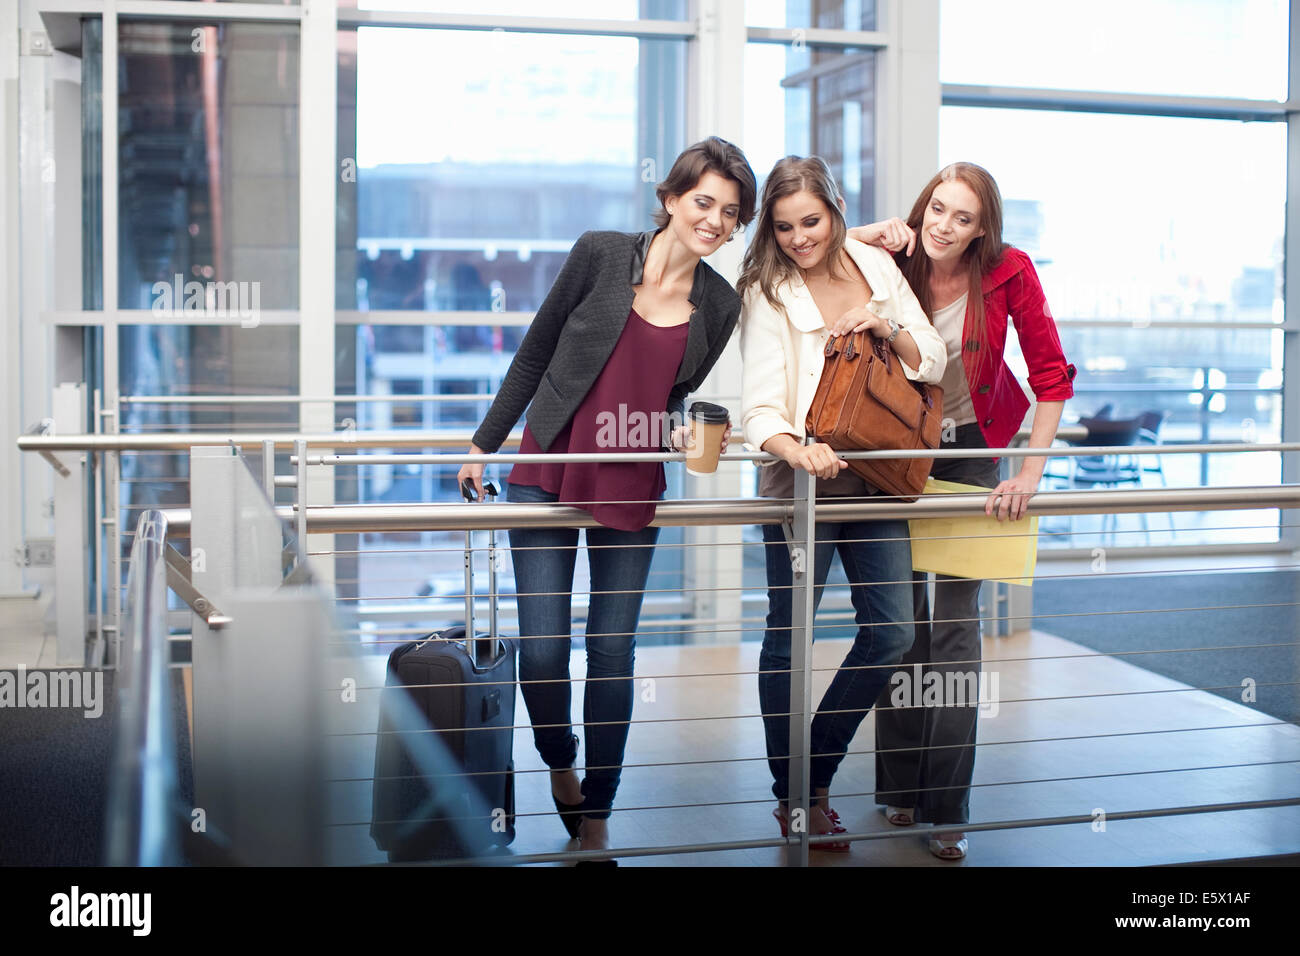 Three businesswomen watching from balcony in conference centre - Stock Image